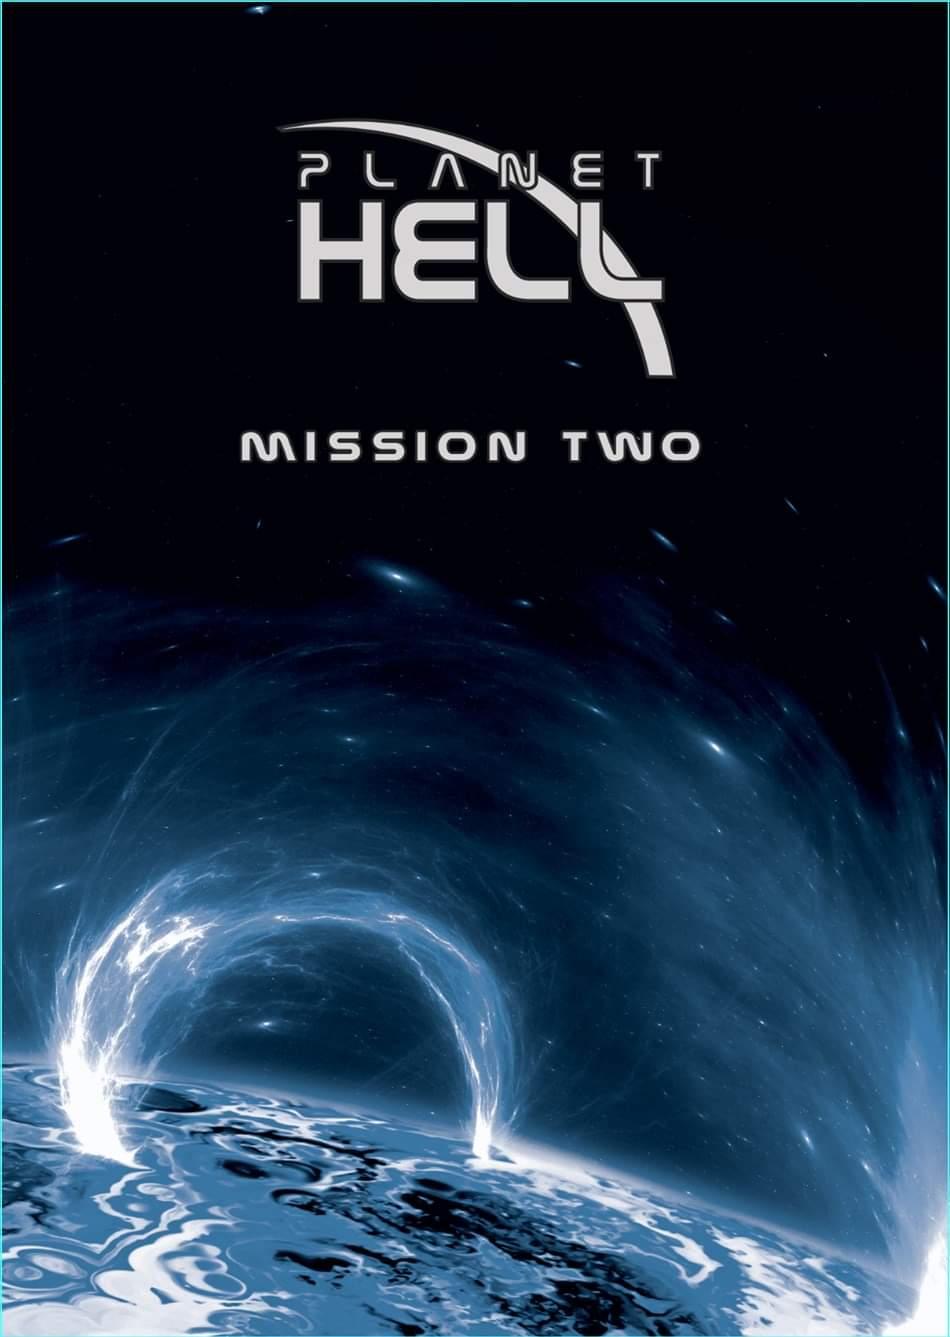 PLANET HELL – 2019 MISSION TWO